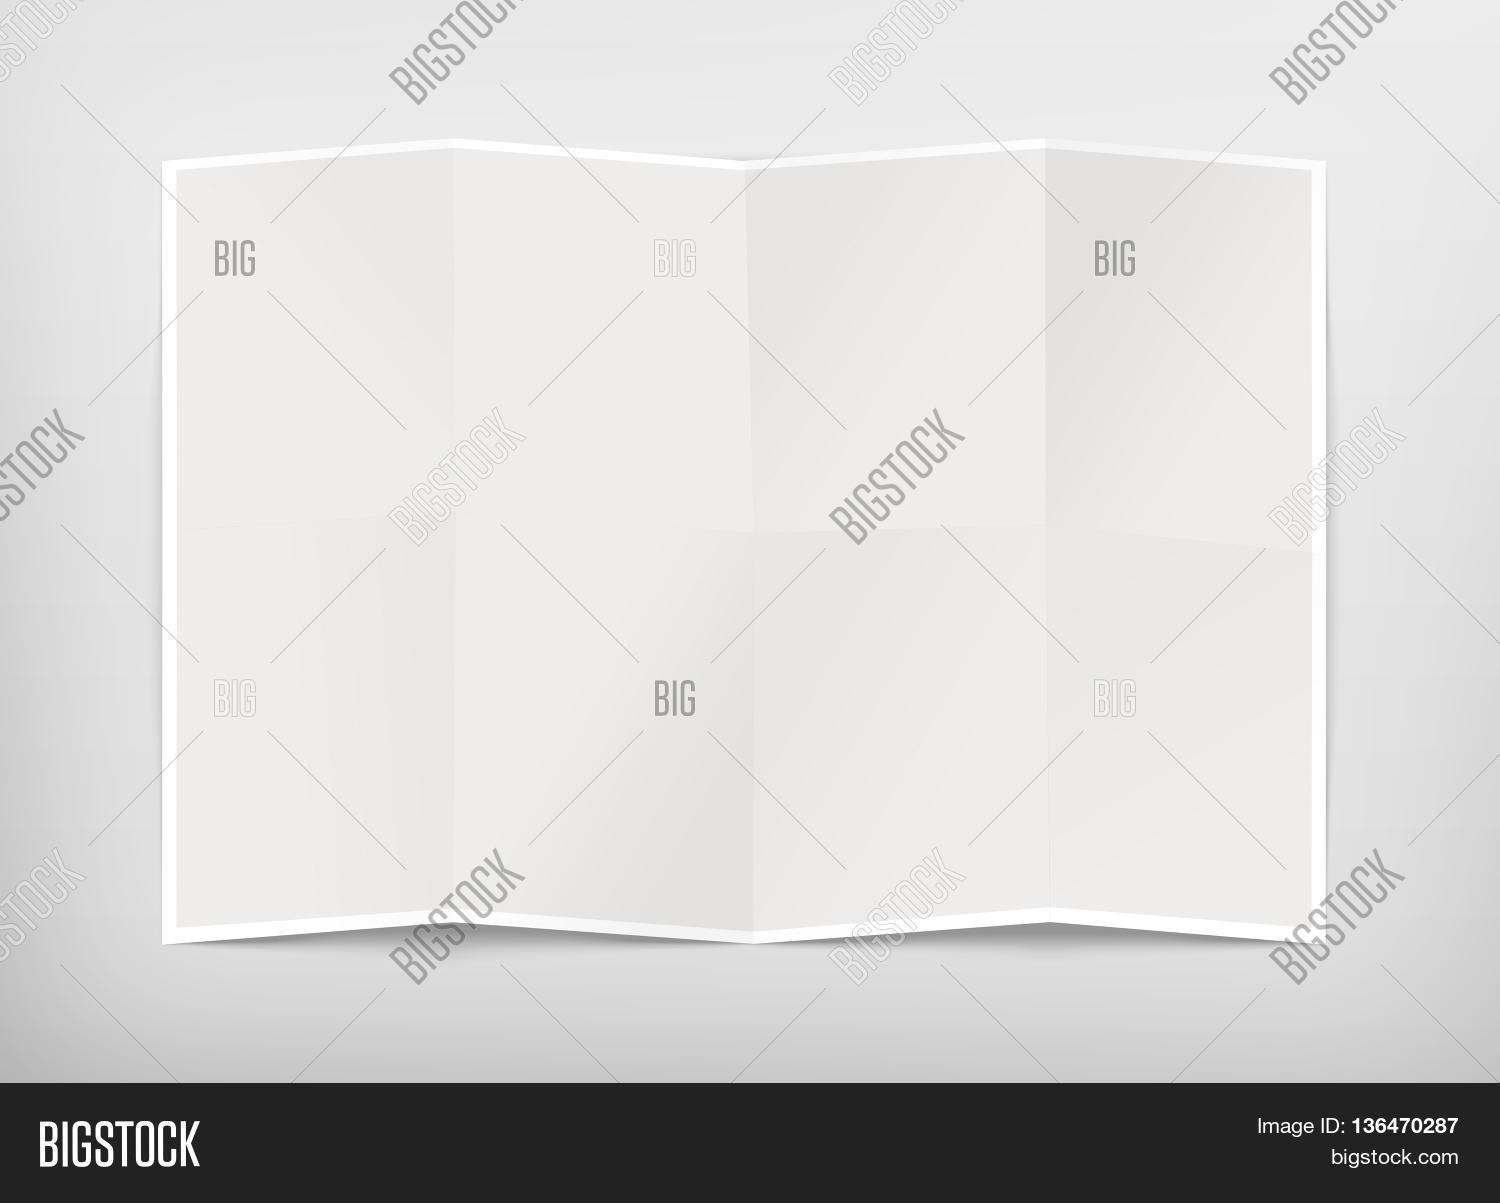 blank chart. Blank Chart Design Mockup Isolated Clipping Path 3d Illustration. Folded Map Template Mock Up Display